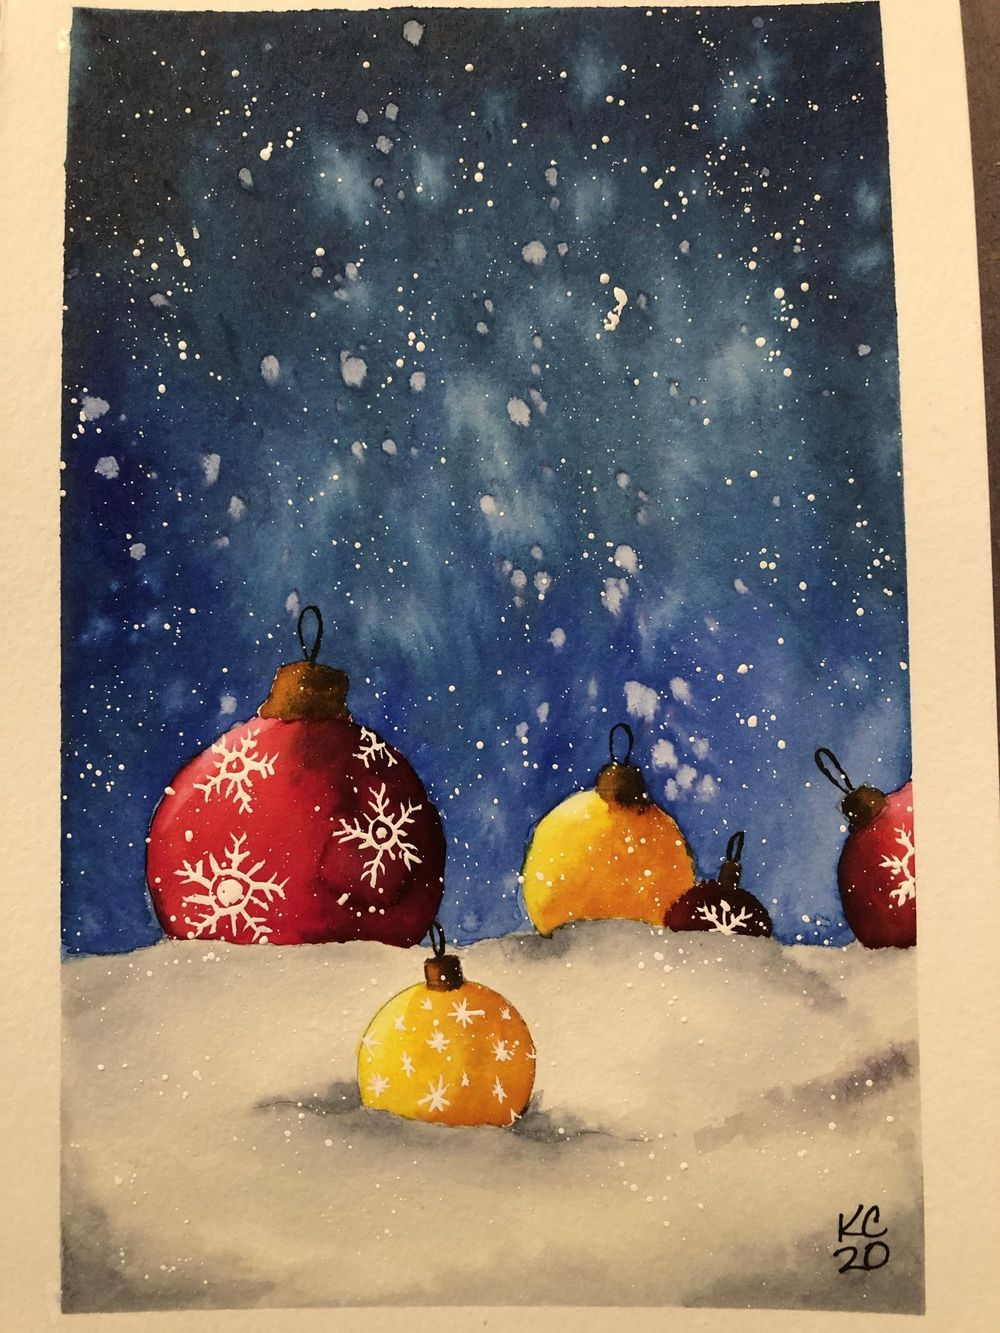 Countdown to Christmas - image 18 - student project